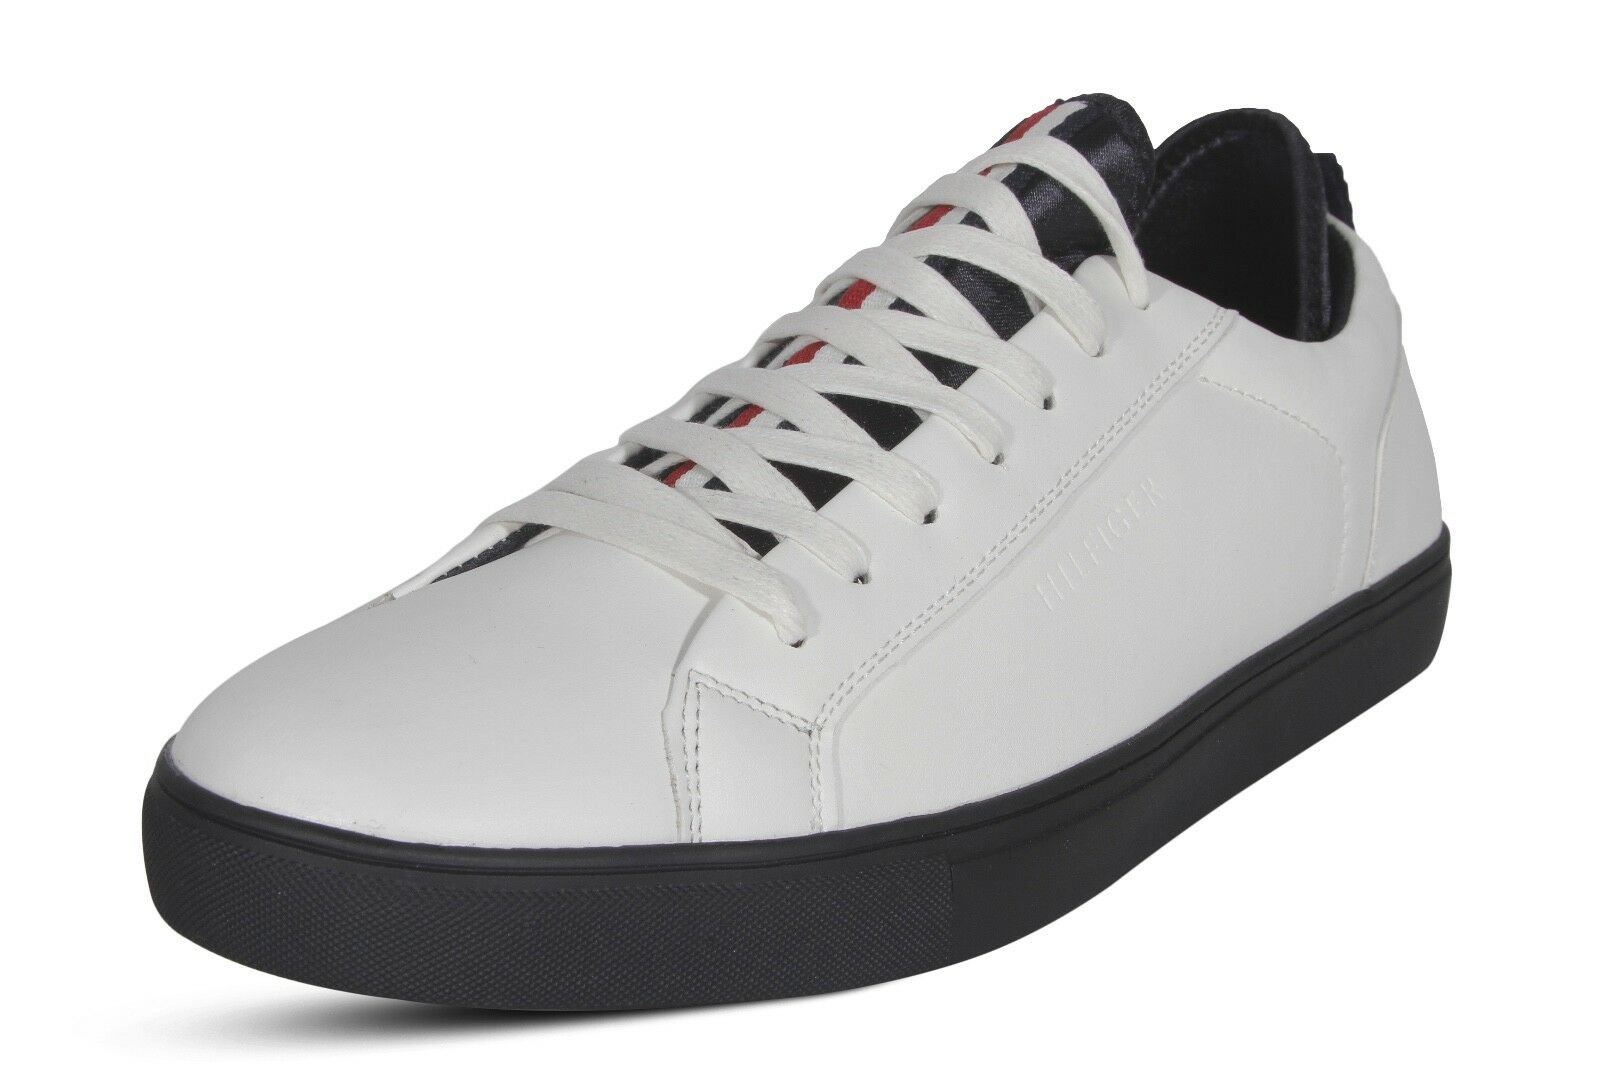 Tommy Hilfiger Mcneil hommes 's Fashion Sneakers Chaussures Leather Lace up blanc